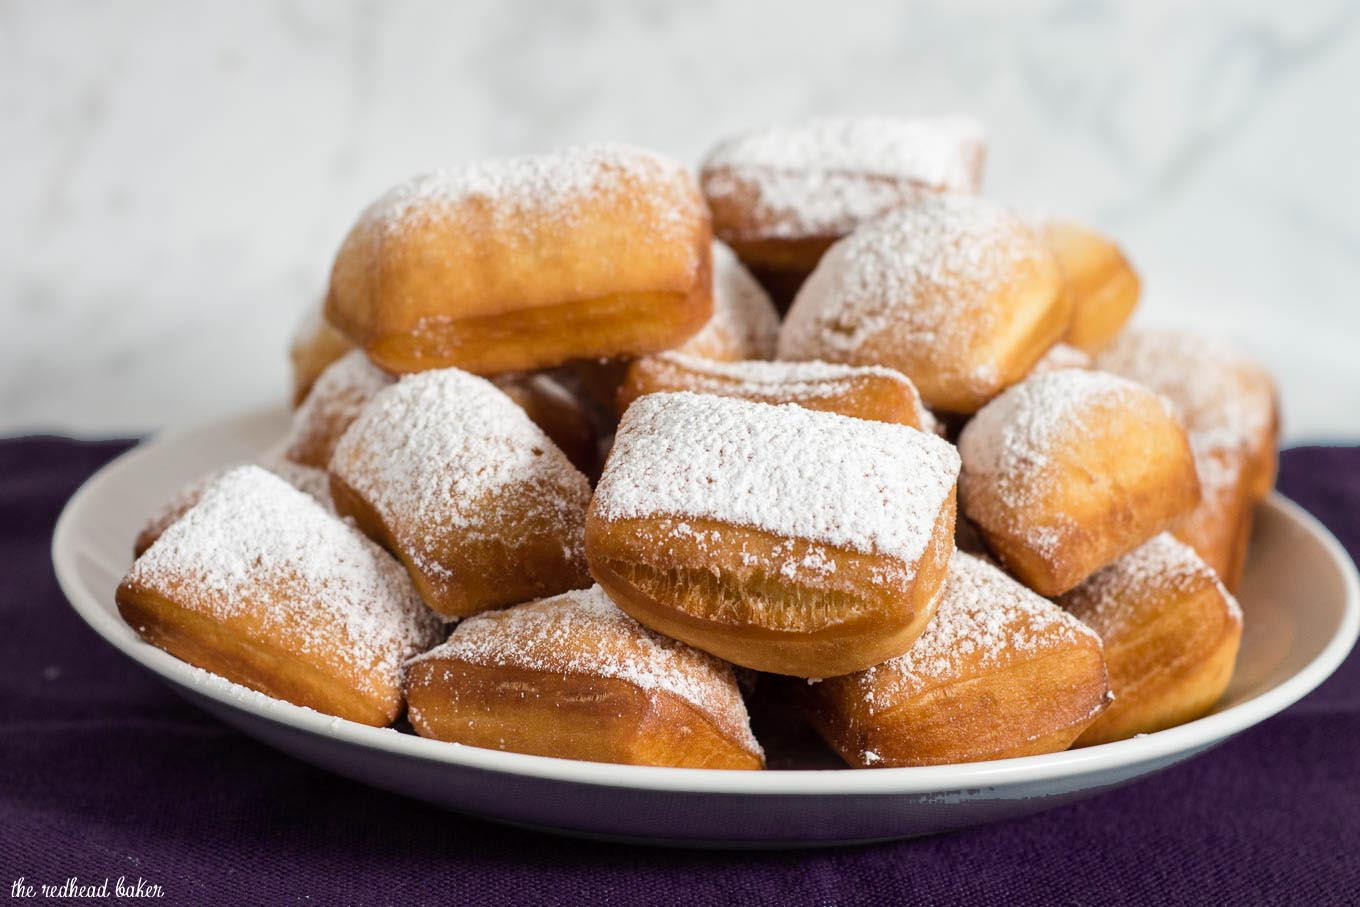 Mardi Gras means it's time for beignets! This is a classic New Orleans recipe, deep-fried then coated in powdered sugar, and served with raspberry jam.